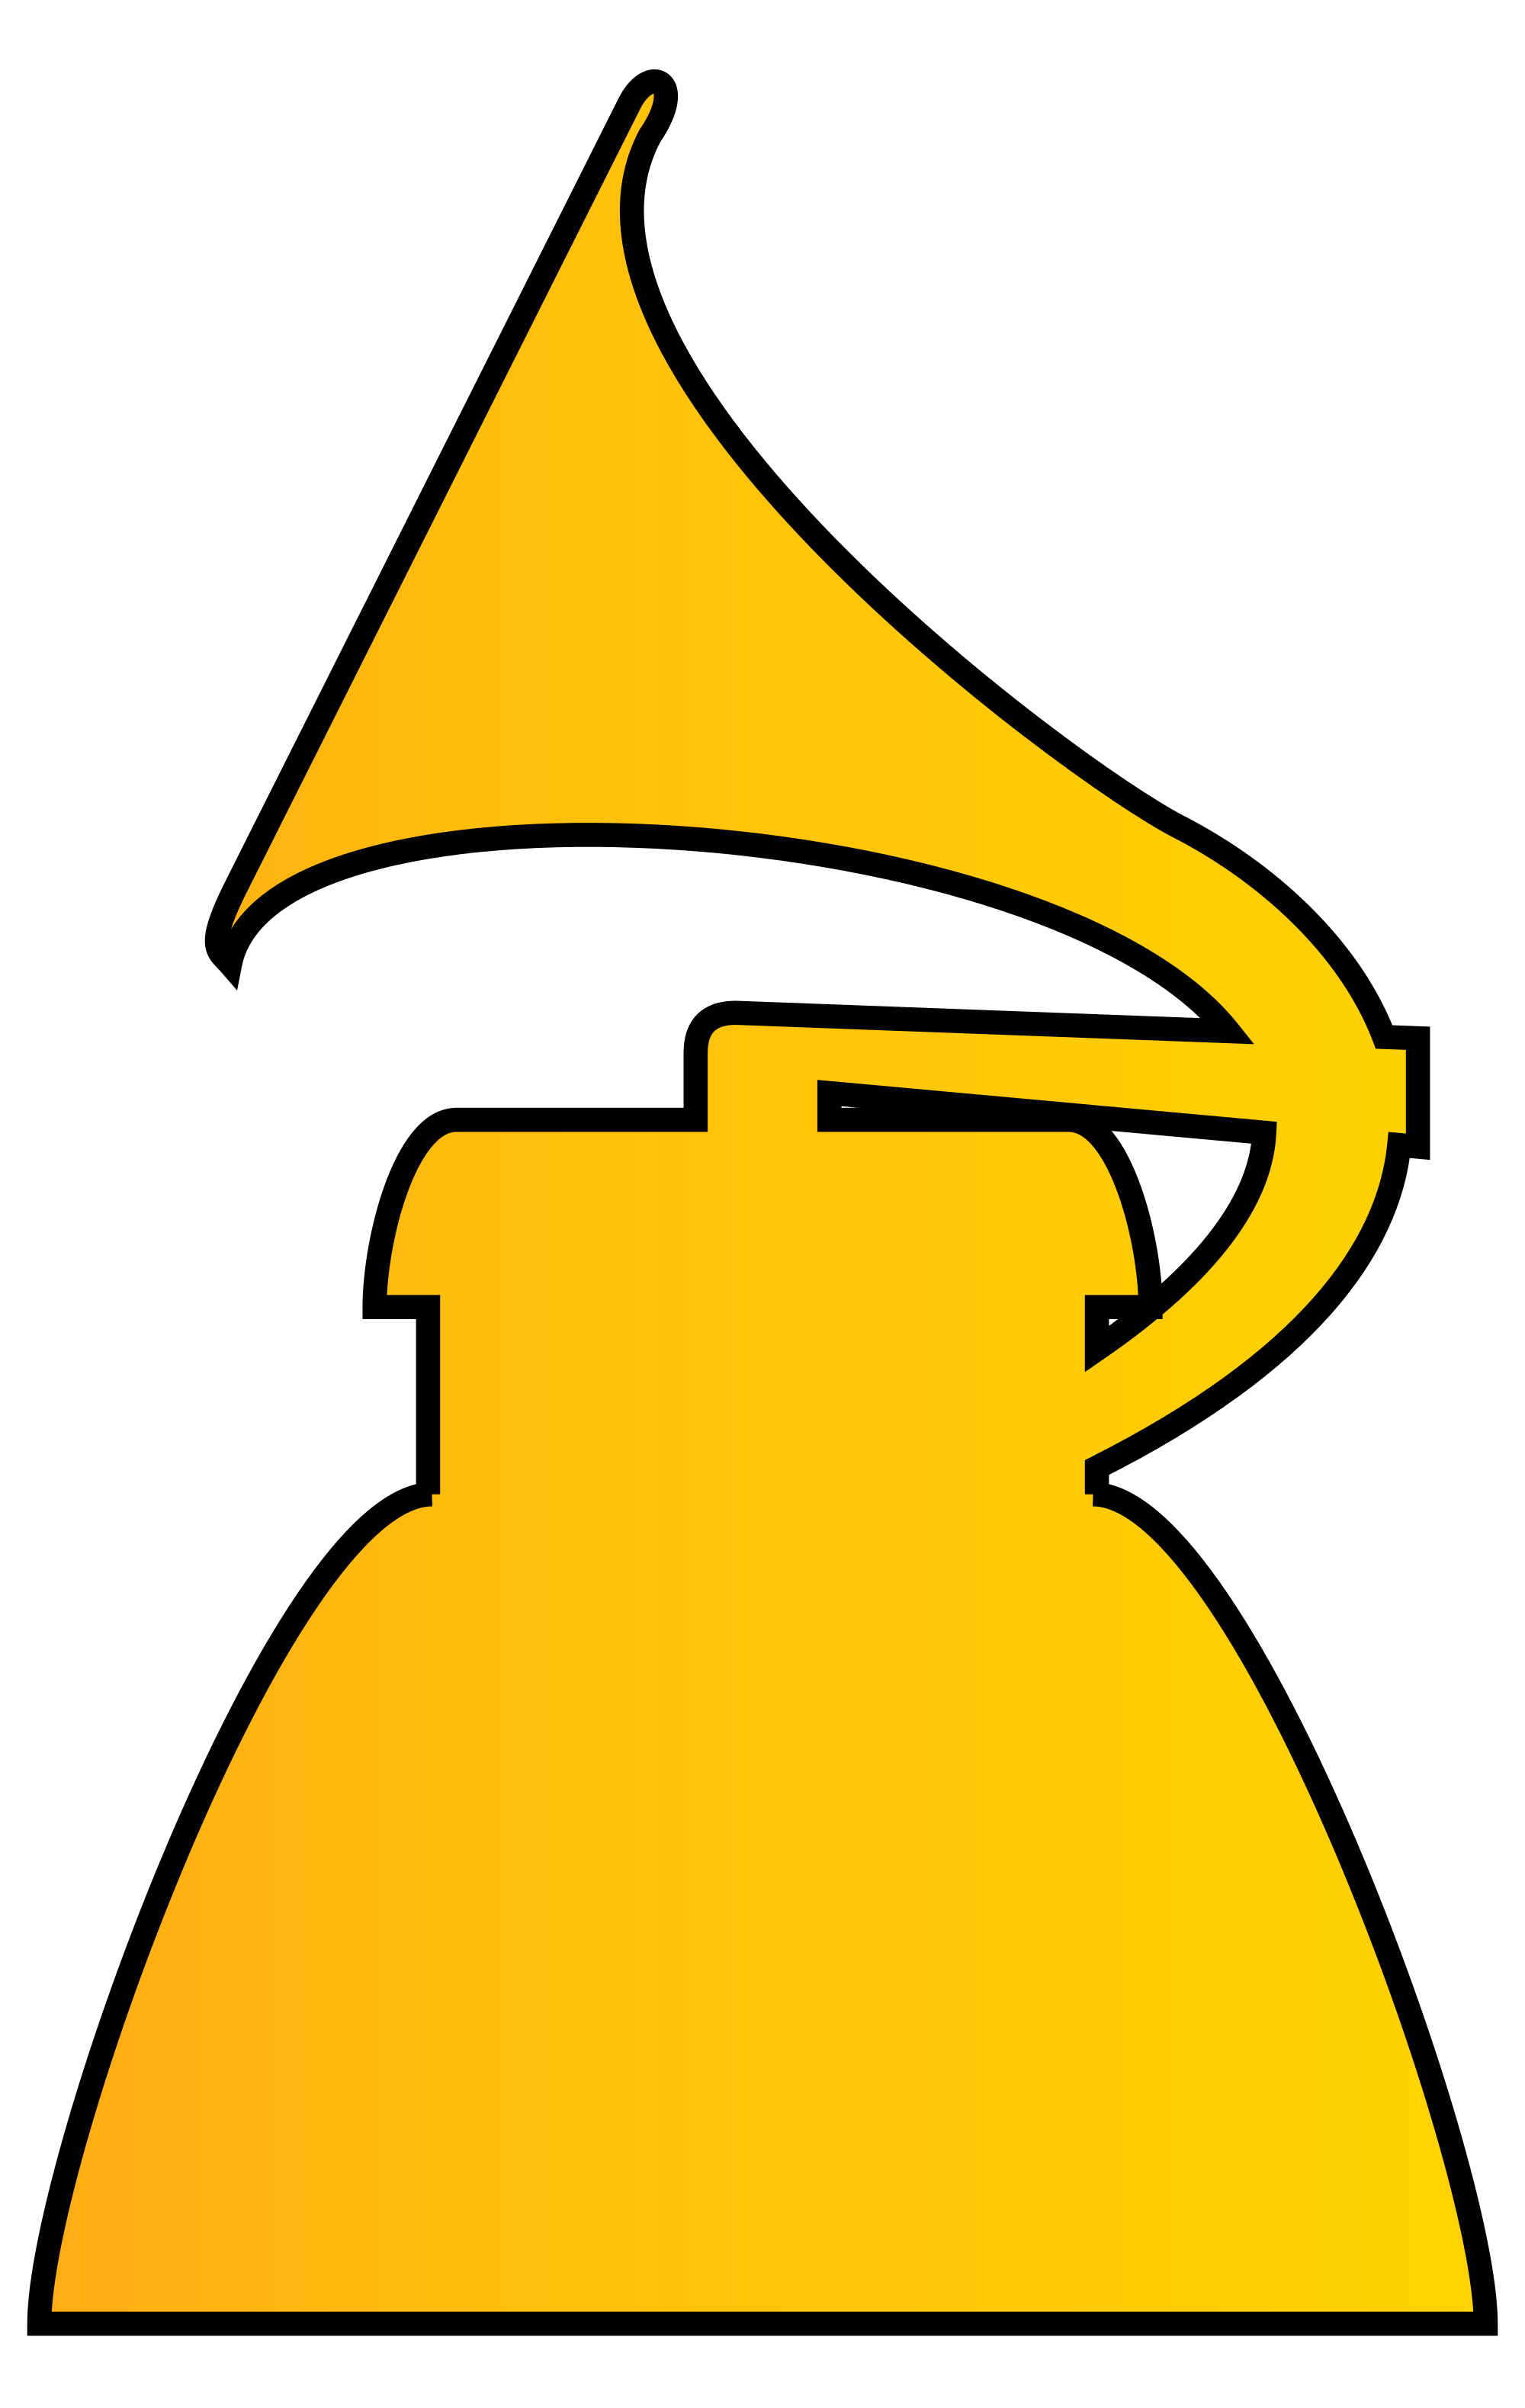 Grammy award png. File icon retouched svg